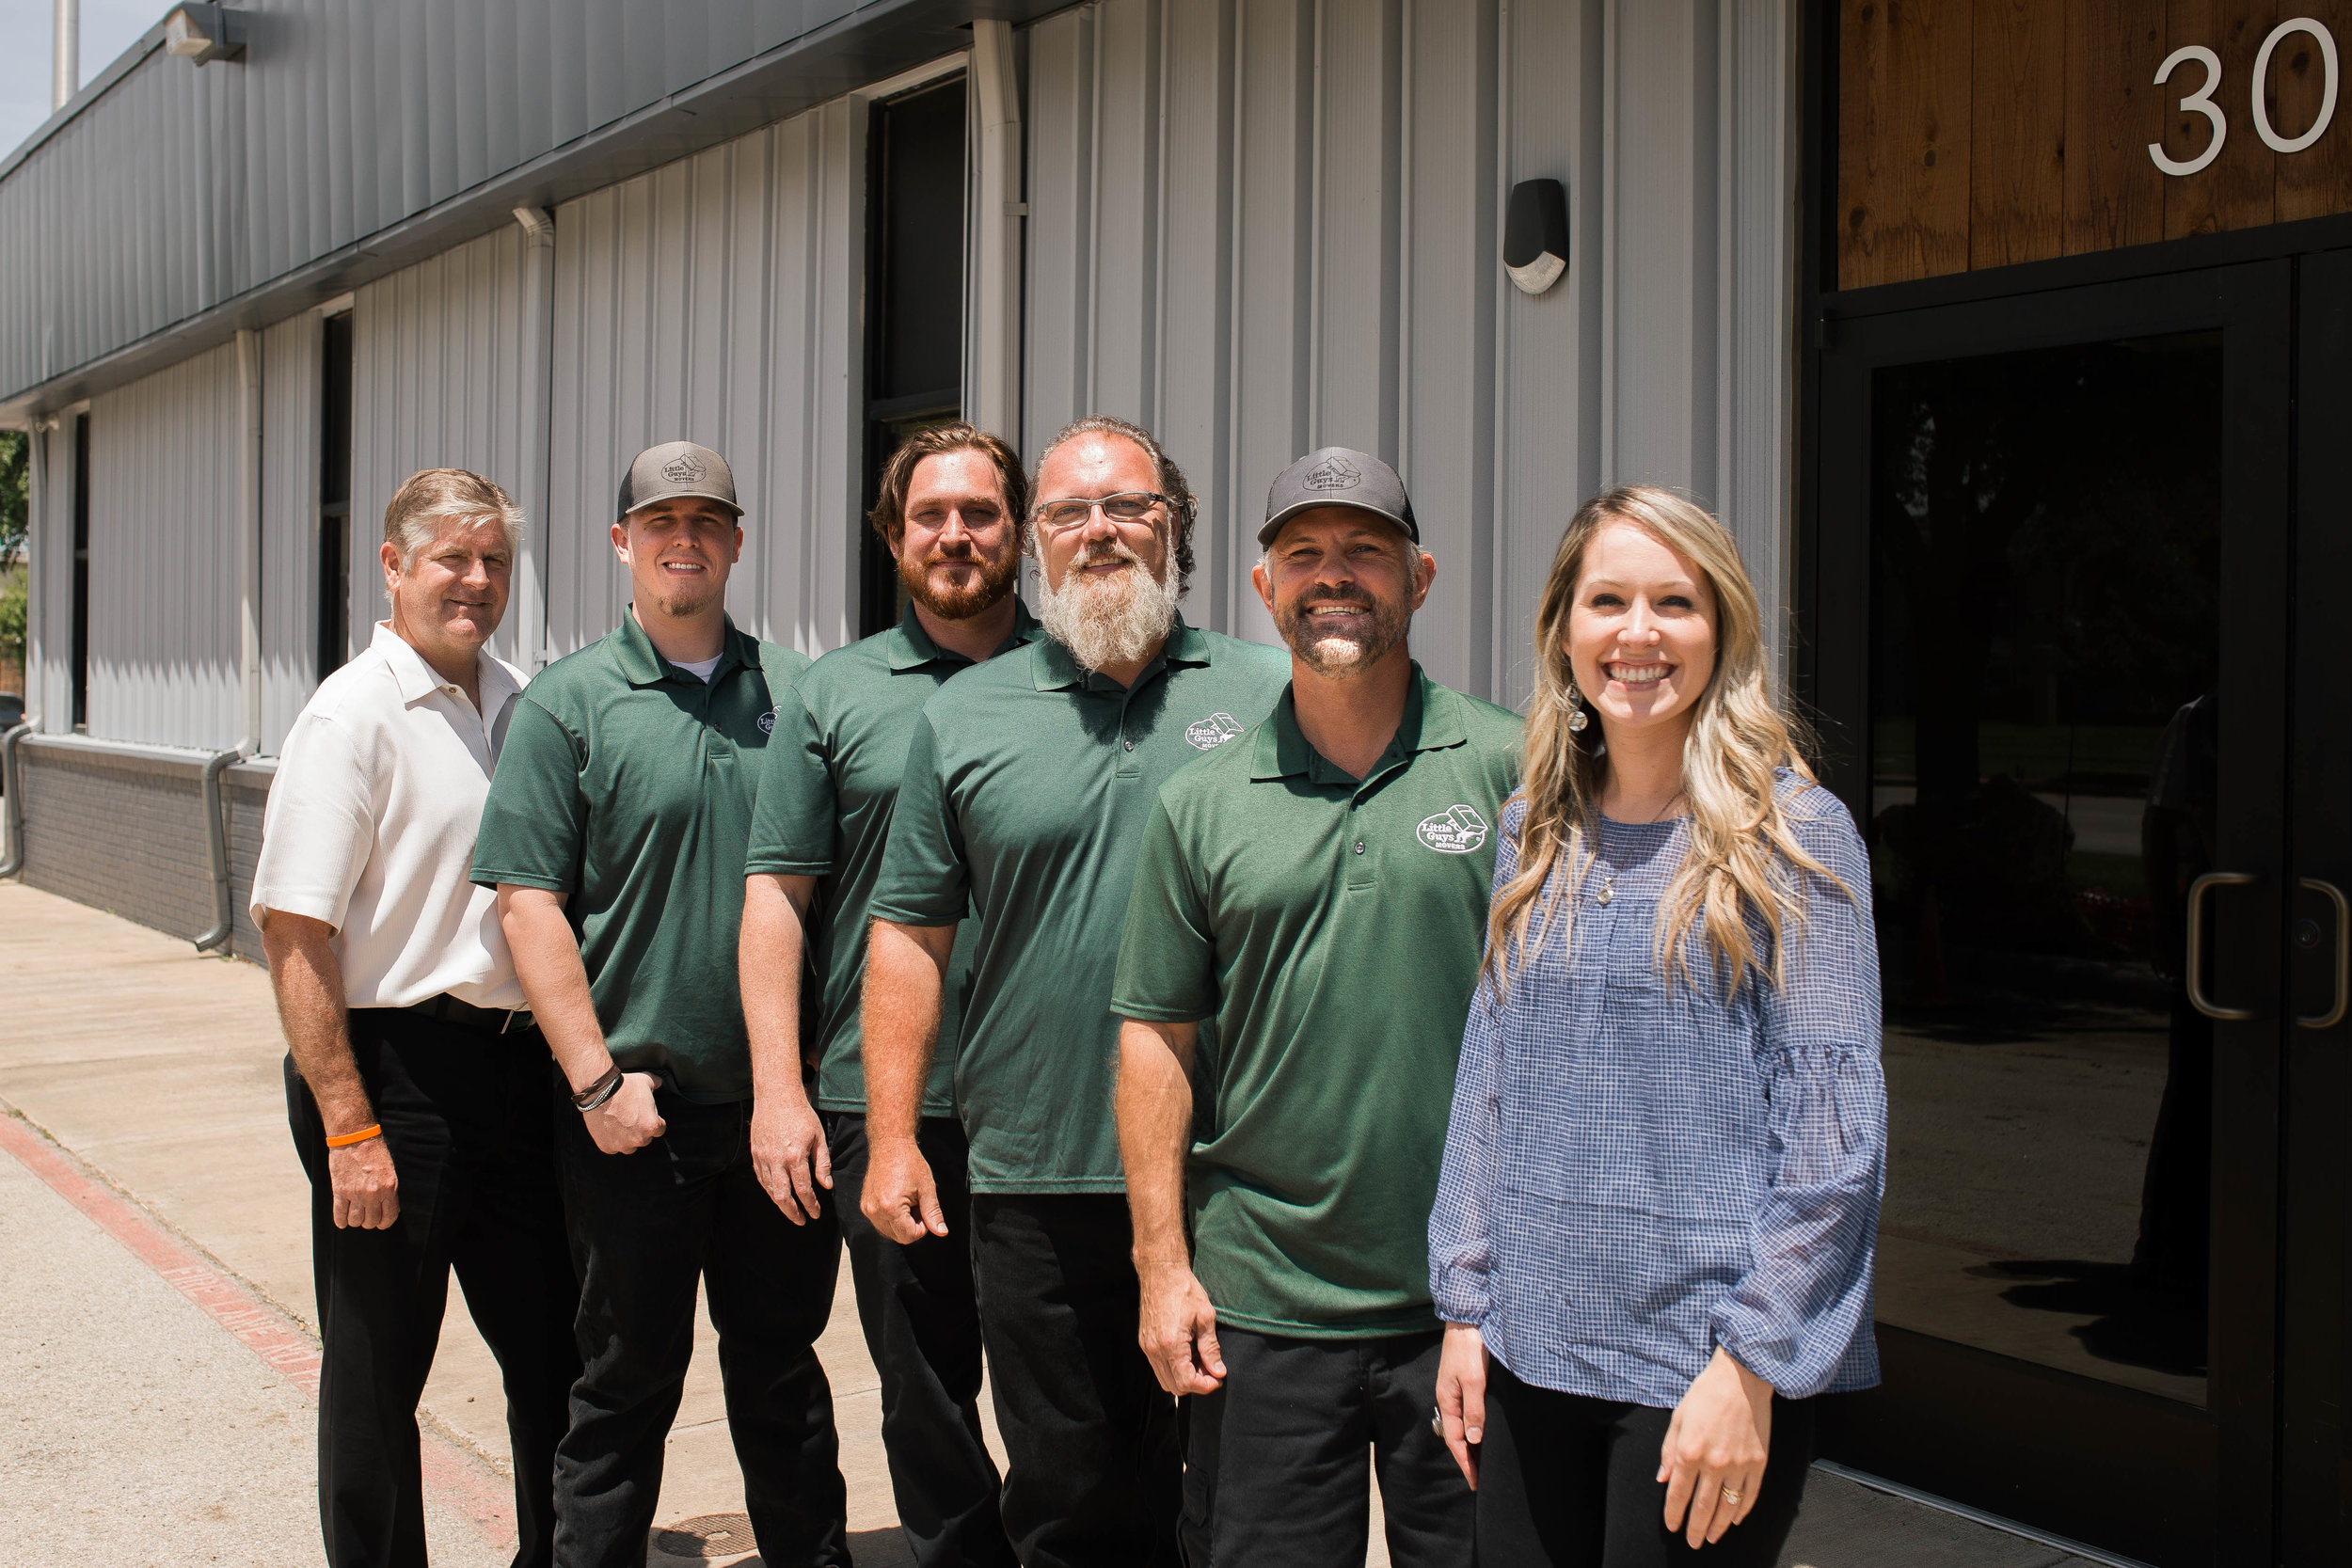 Serve Denton 2nd Vice Chair Hank Dickenson, Little Guys Movers Team Member Jordan Green, Little Guys MoversTeam Member Brad Steiger, Little Guys Movers Founder Marcus Watson, Little Guys Movers Team Member Chris Hawley, Serve Denton Executive Director Carlie Kuban